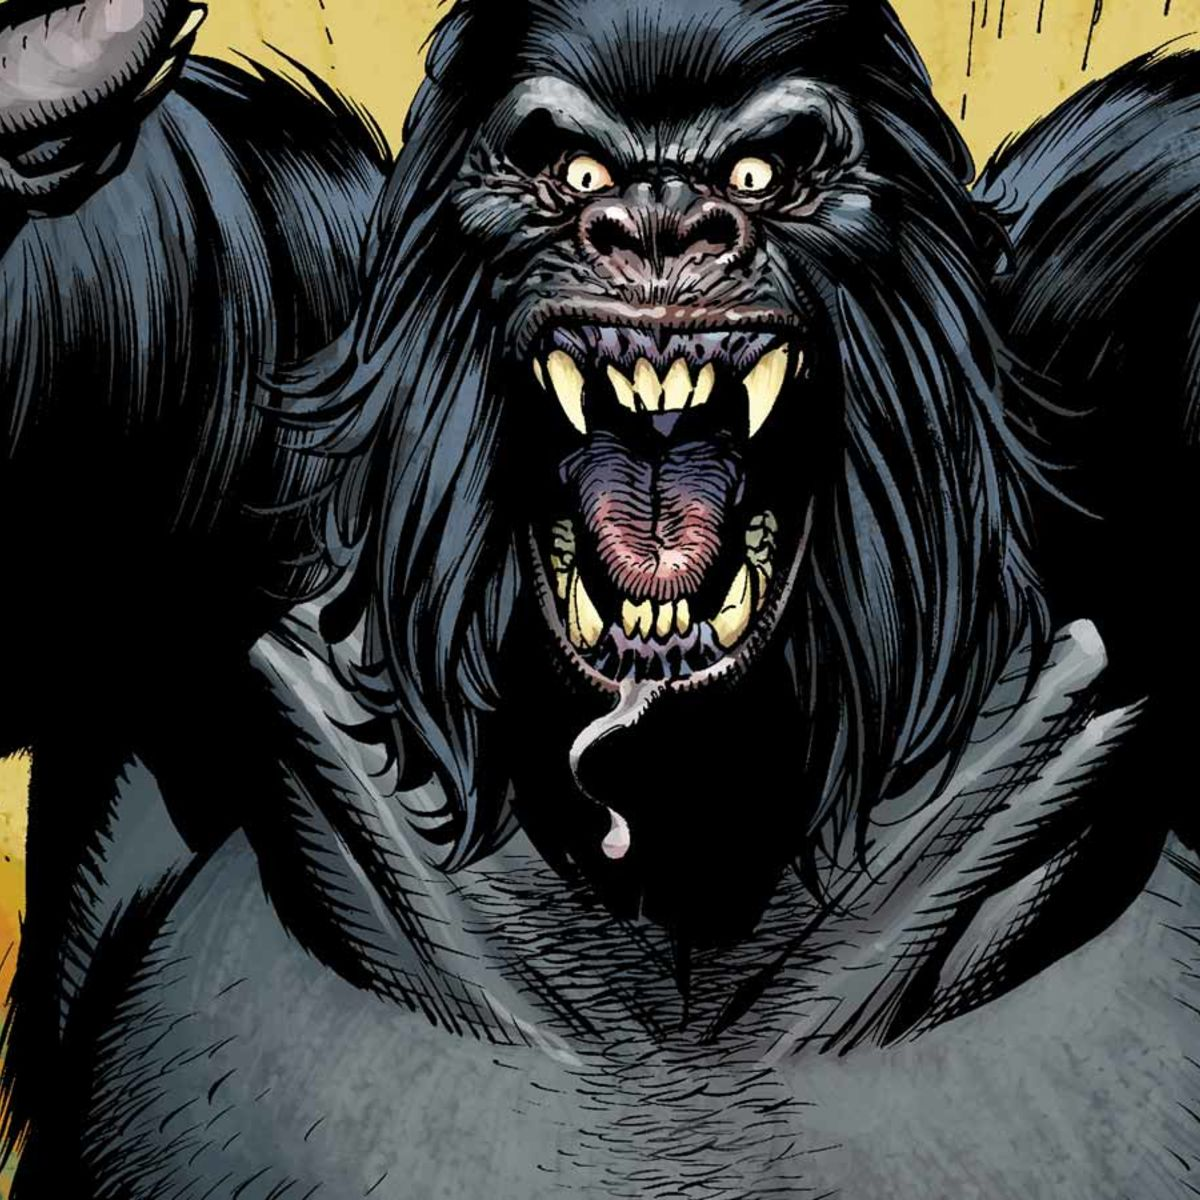 grodd-comes-to-the-flash-new-teaser-trailer-4e31ed70-63b3-4430-ab67-a2400060a23c.jpeg